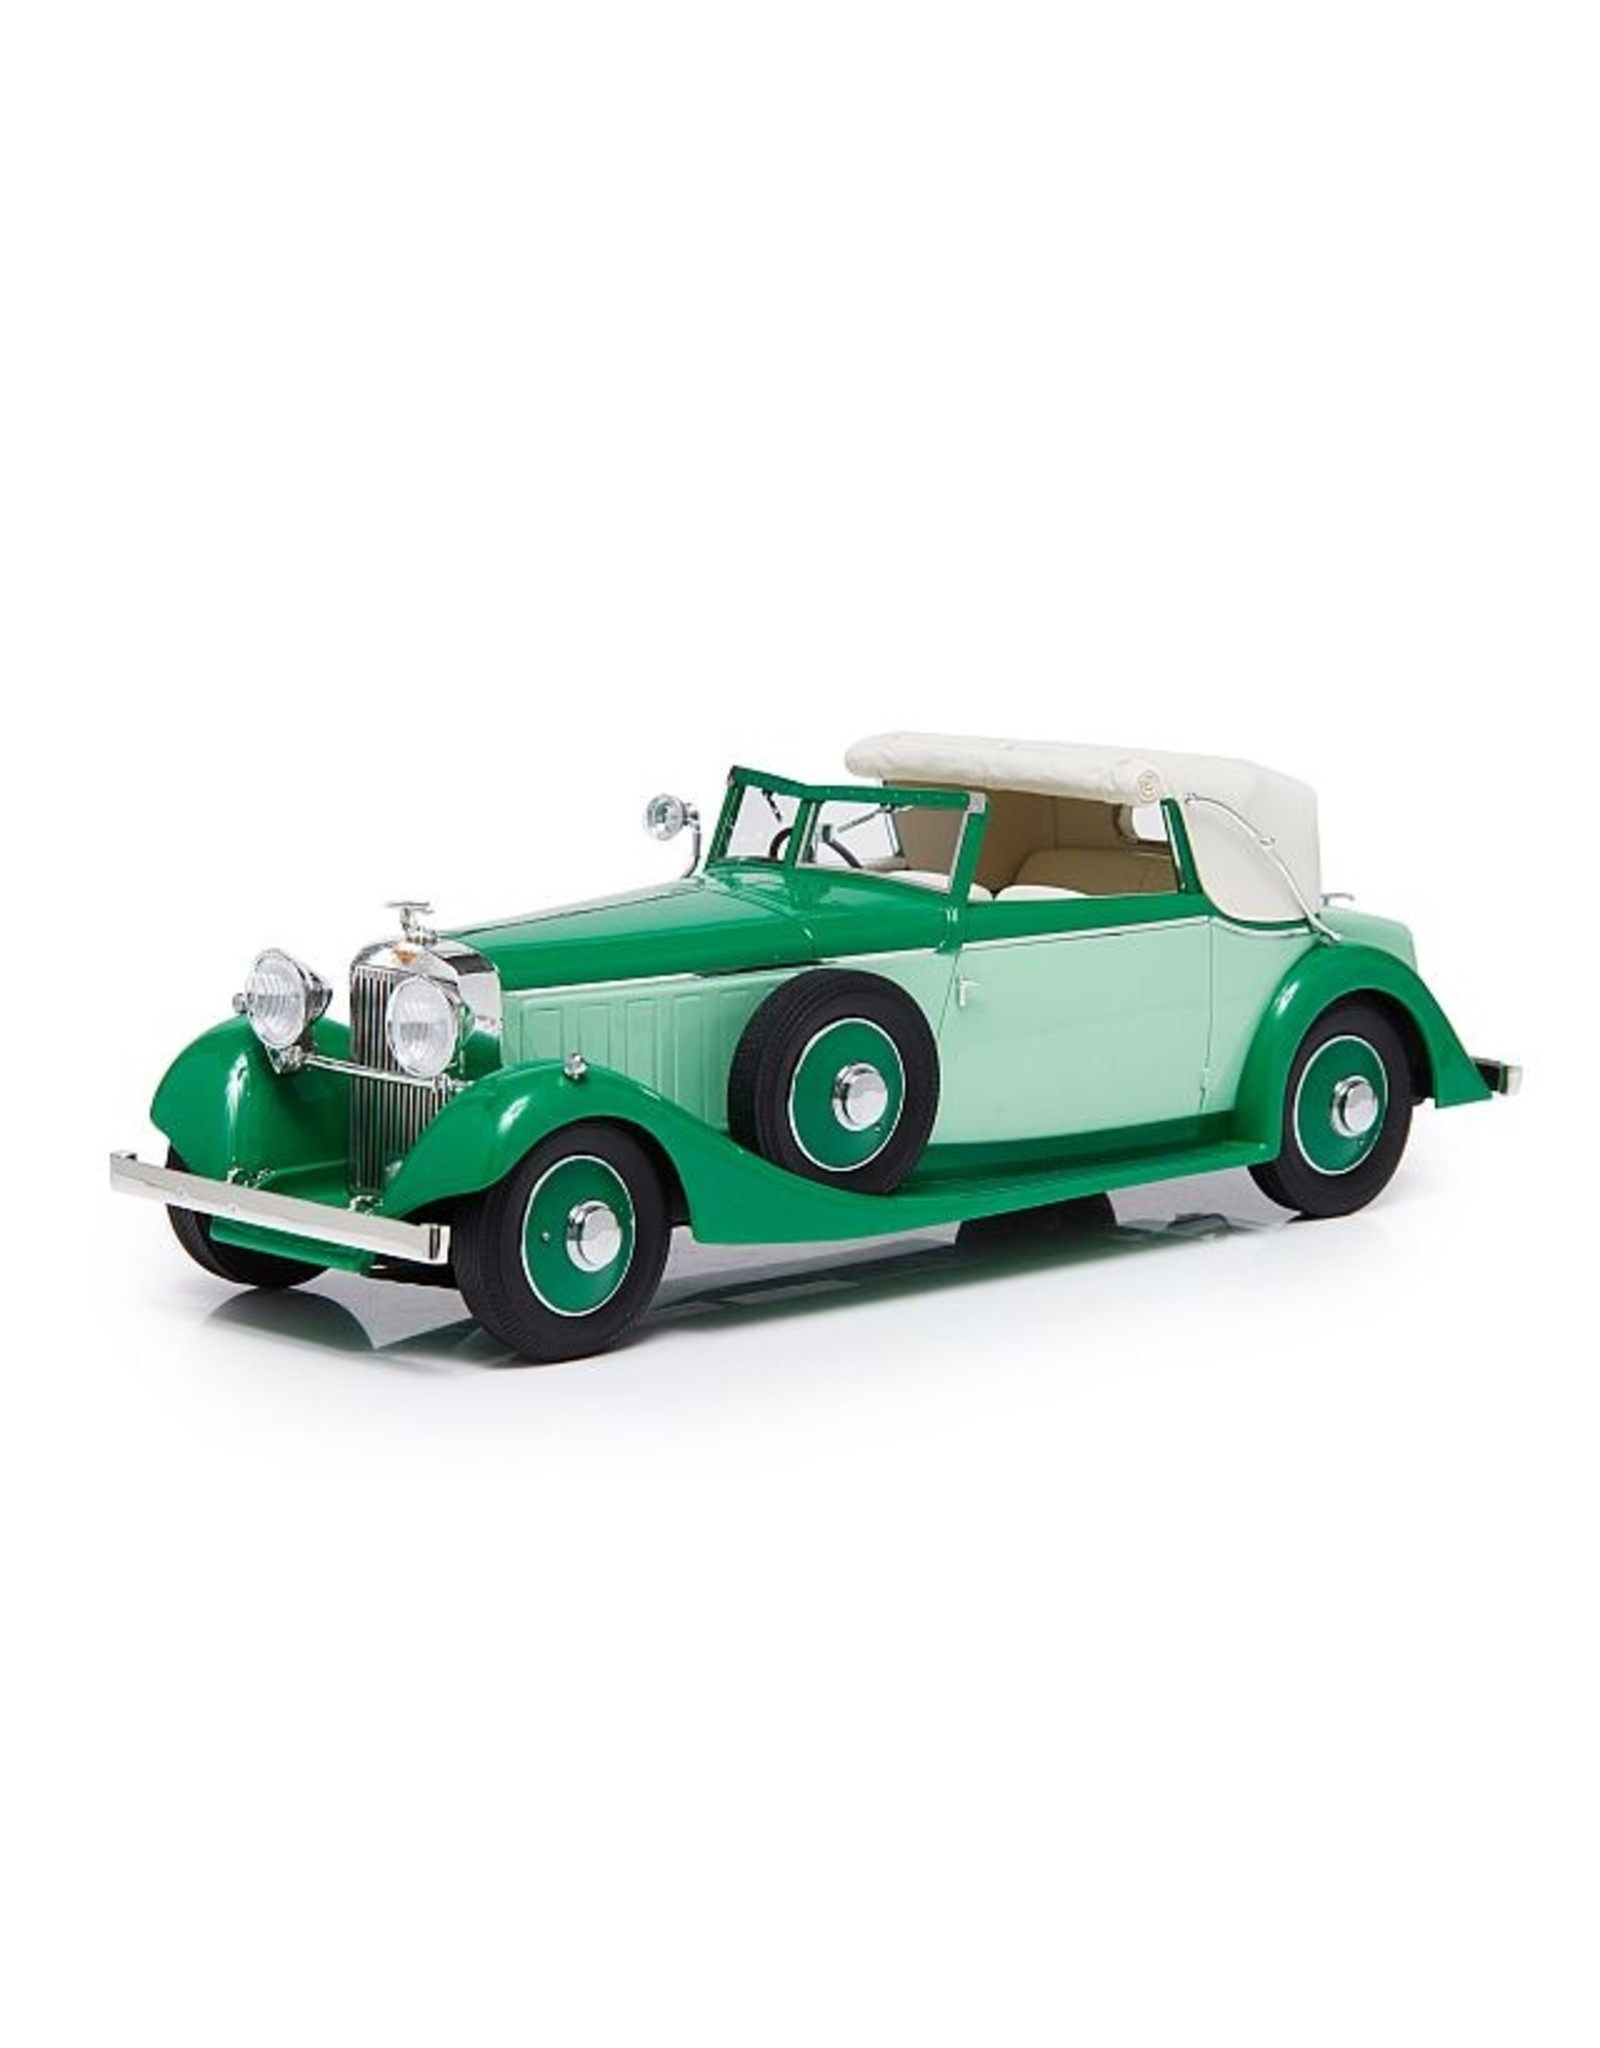 Hispano-Suiza by Fernandez & Darrin HISPANO SUIZA J12 THREE POSITION DROPHEAD COUPE BY FERNANDEZ & DARRIN-1934(half open)2 tones green.